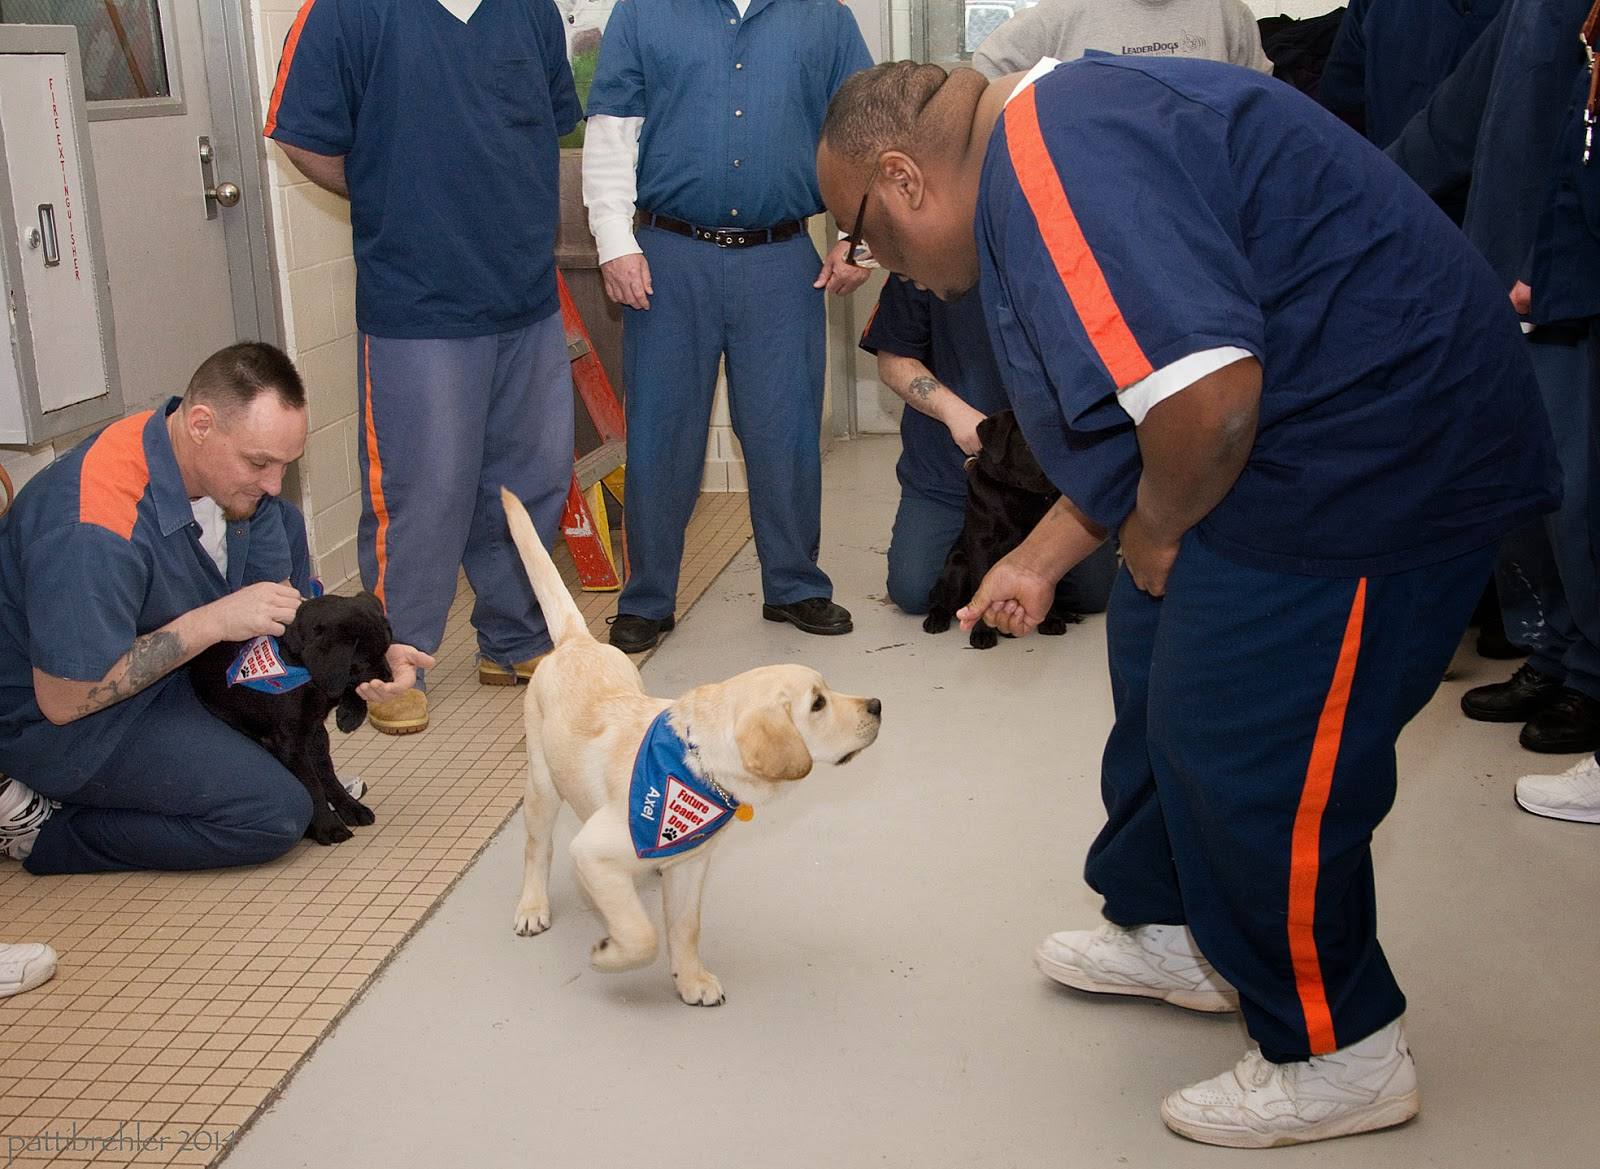 The man on the left is kneeling with a small black lab puppy, he is holding the puppy by the collar and looking down at him. The puppy is sitting between his knees and is wearing a Future Leader Dog blue bandana. The yellow lab puppy is following the african american man's right hand, which is holding a treat. The yellow lab, also wearing a Future Leader Dog blue bandana, is reaching toward the man's hand. The man is backing up away from the black lab puppy. There are several men forming a circle around the two men and pups.